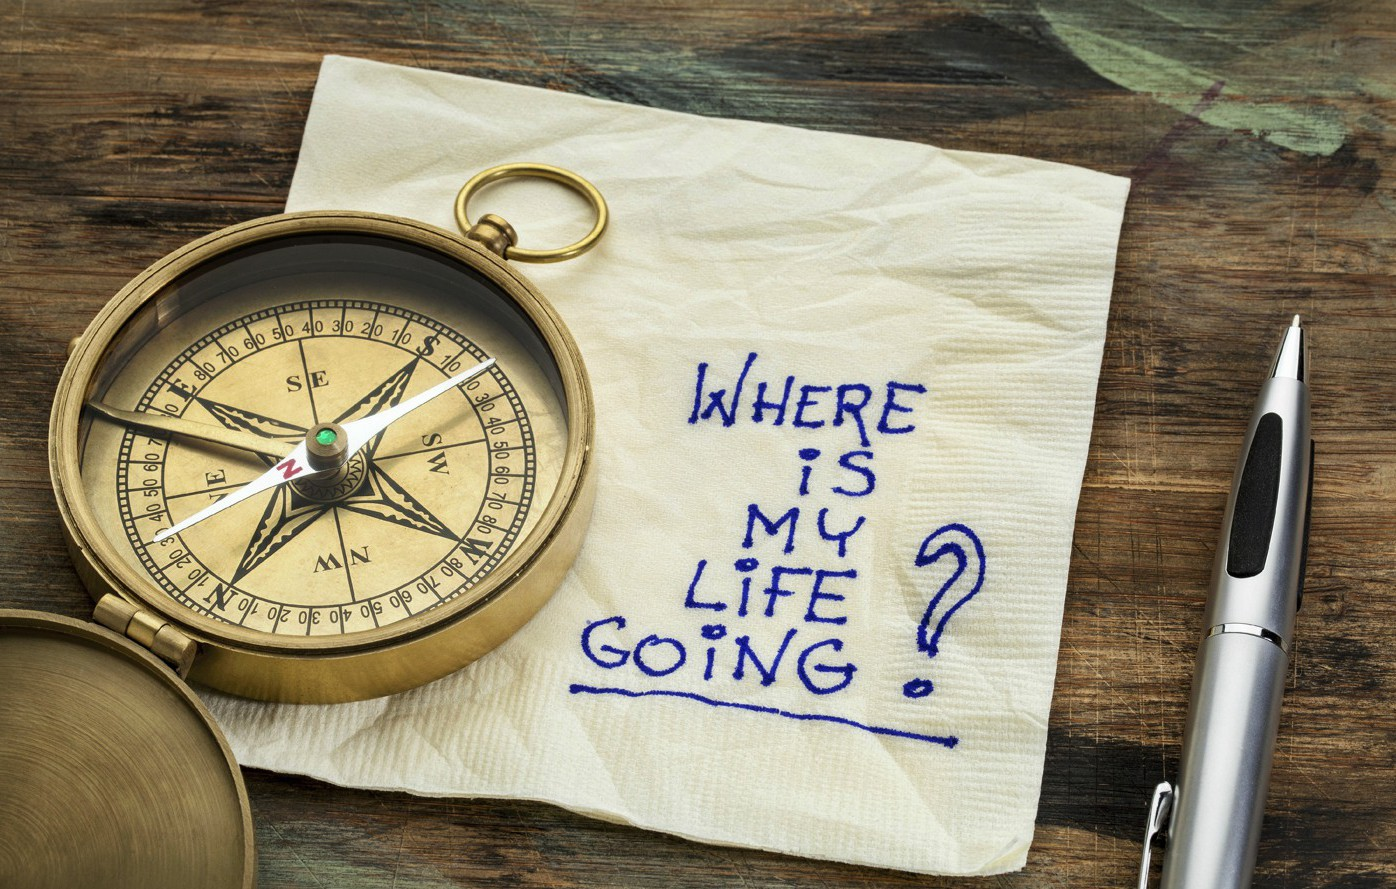 Compass laying on napkin with the words Where is my life going? wirtten on the napkin